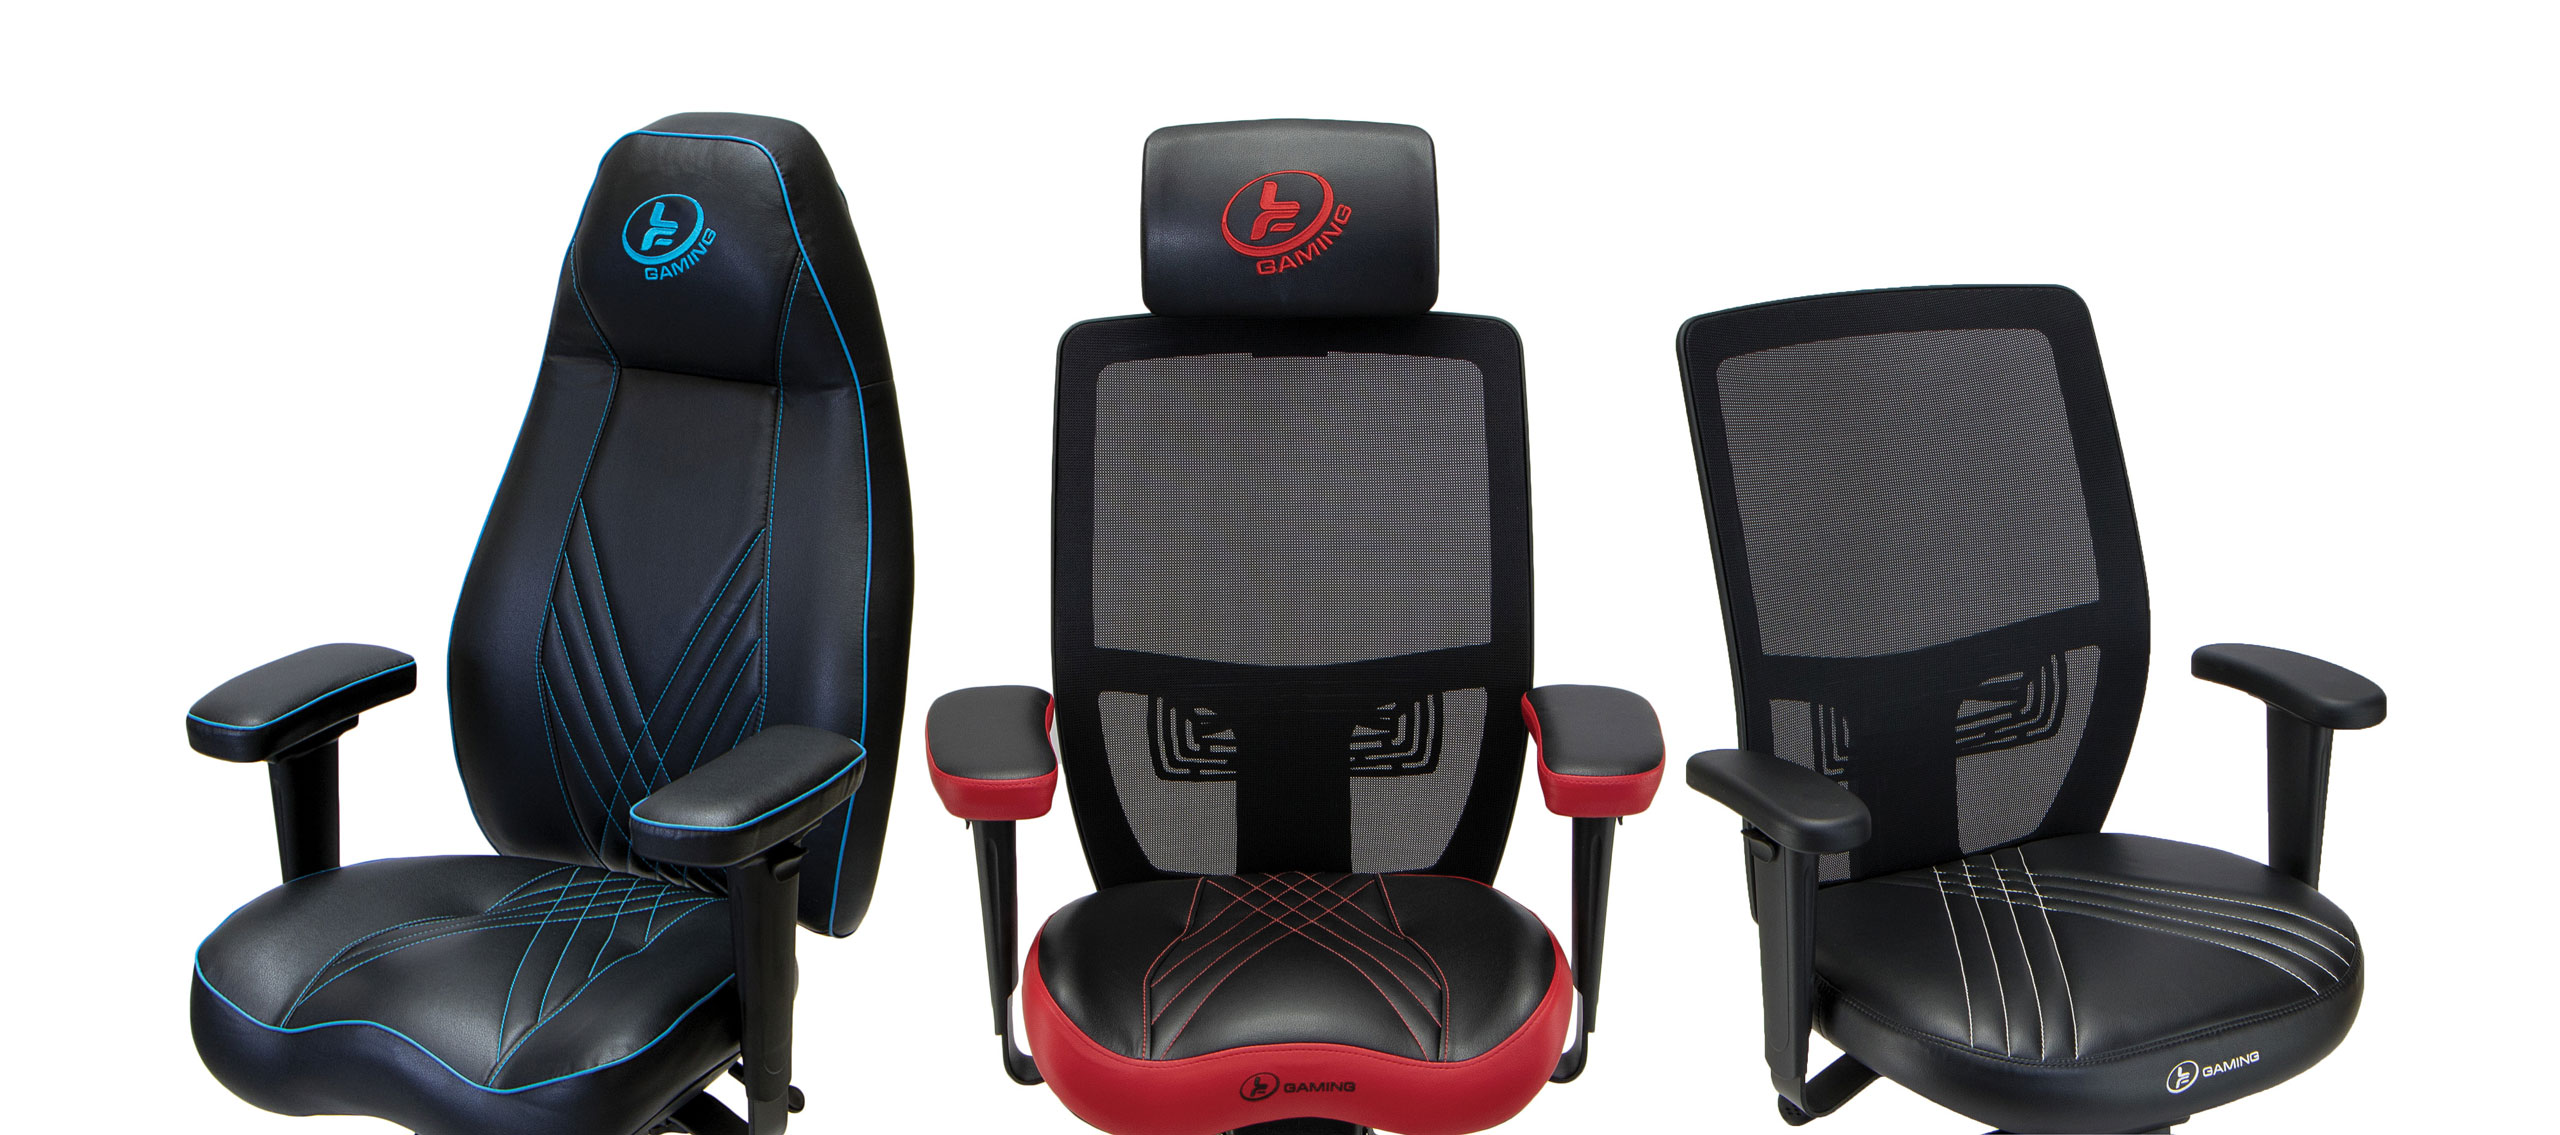 Superb Lf A Chair With Comfort And Style Lf Gaming Chairs At E3 Forskolin Free Trial Chair Design Images Forskolin Free Trialorg